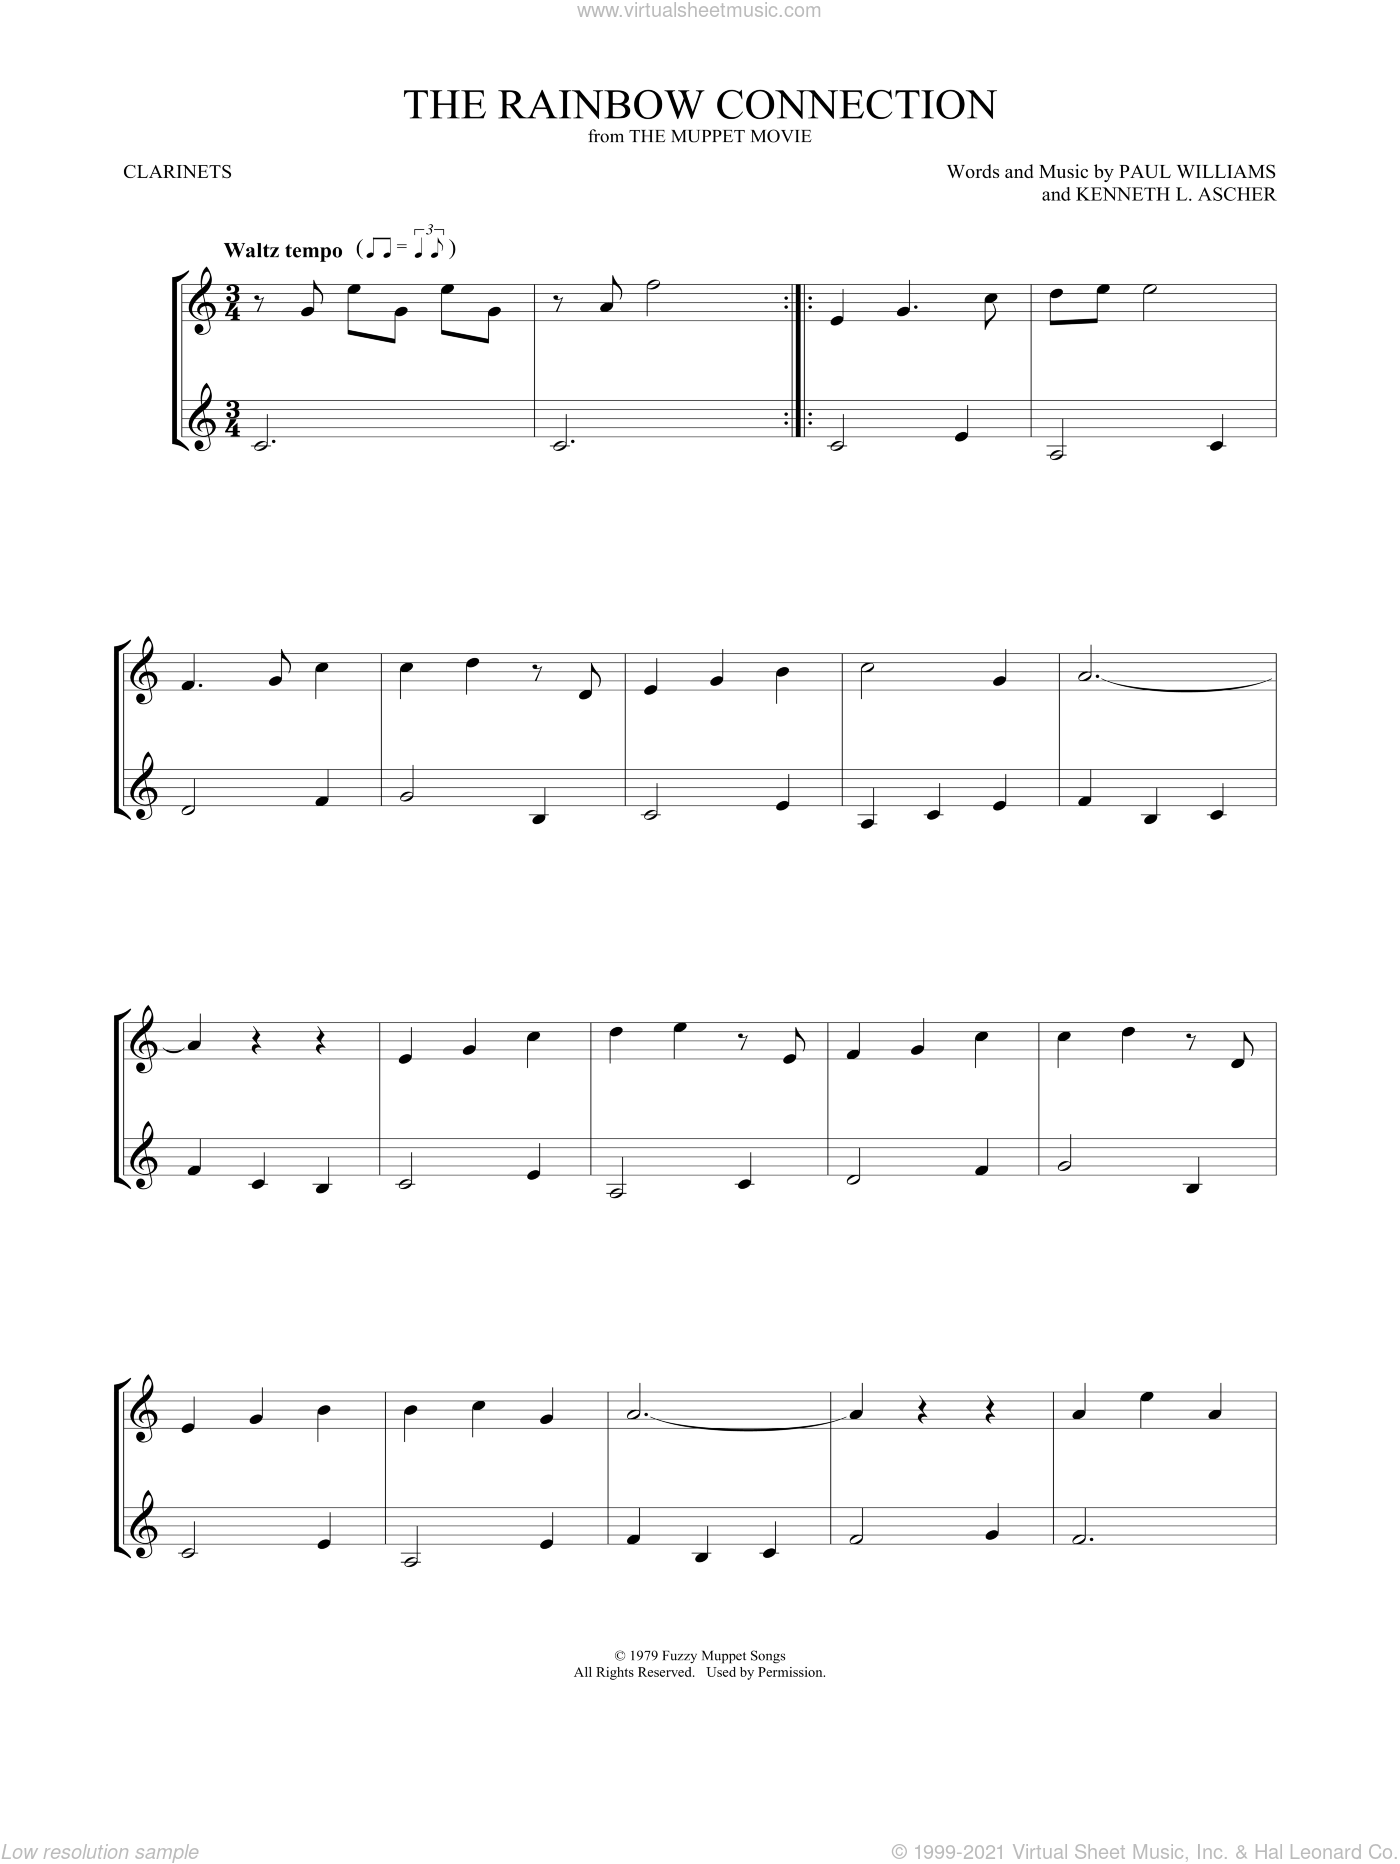 The Rainbow Connection sheet music for two clarinets (duets) by Paul Williams and Kenneth L. Ascher, intermediate skill level